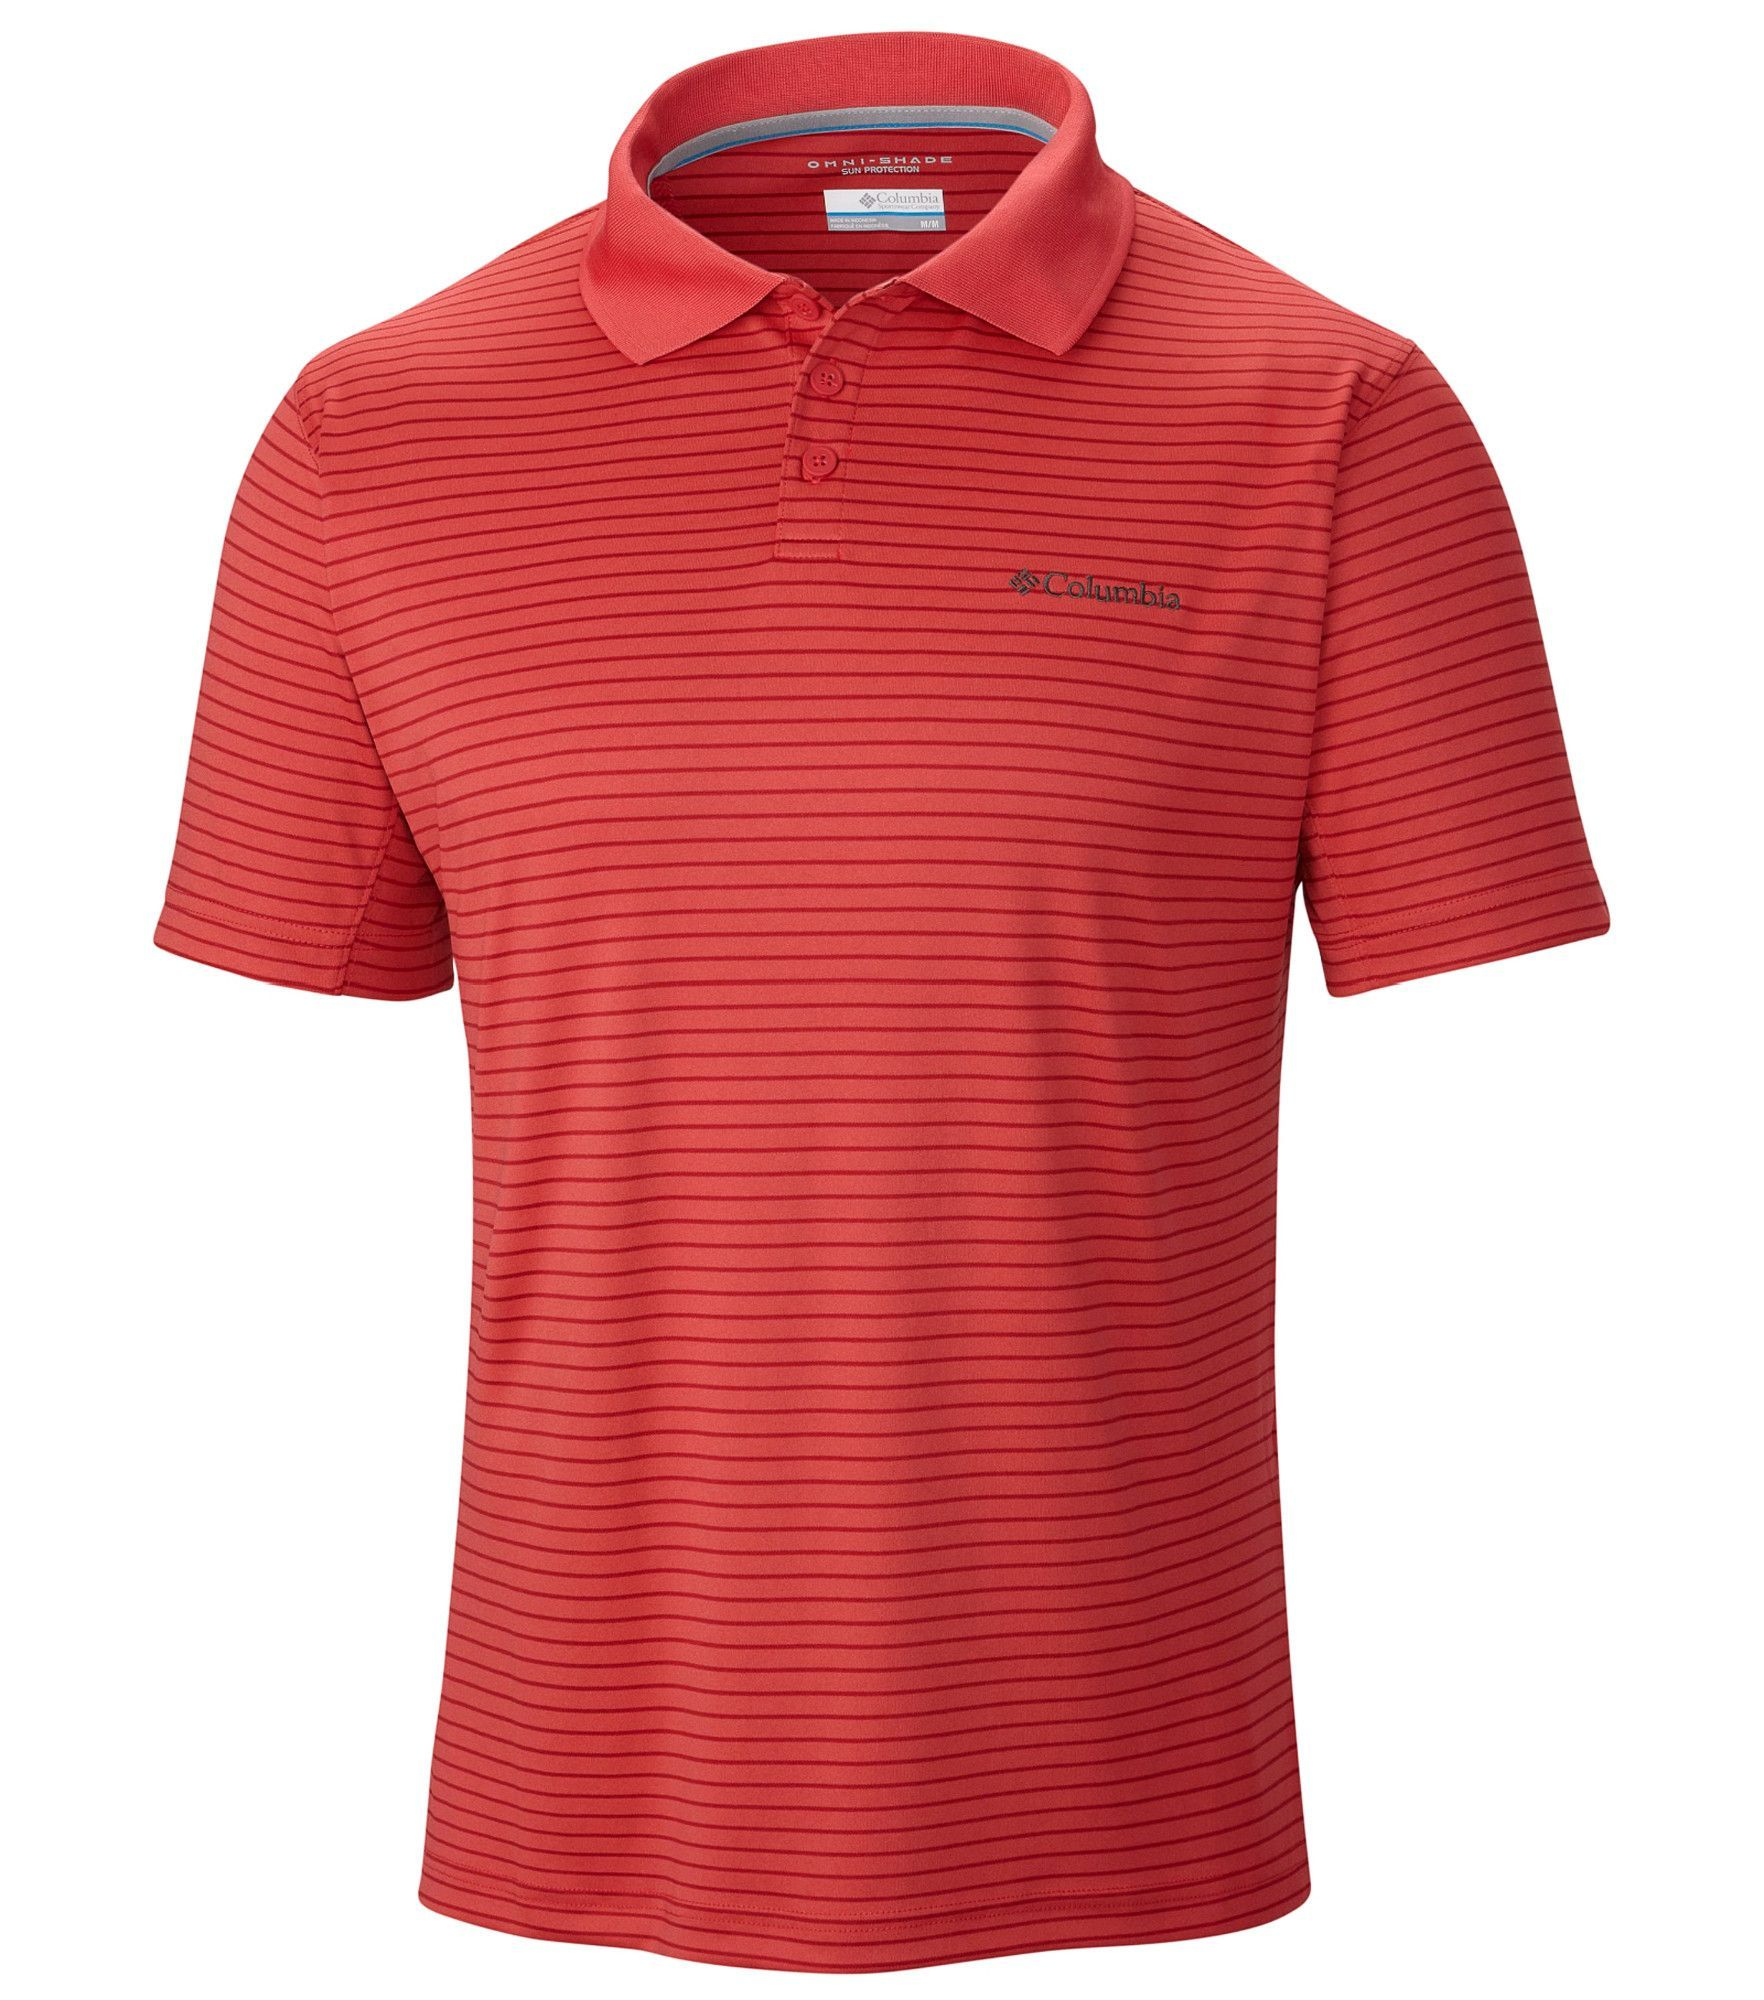 Columbia Utilizer Stripe Polo Shirt - Mens